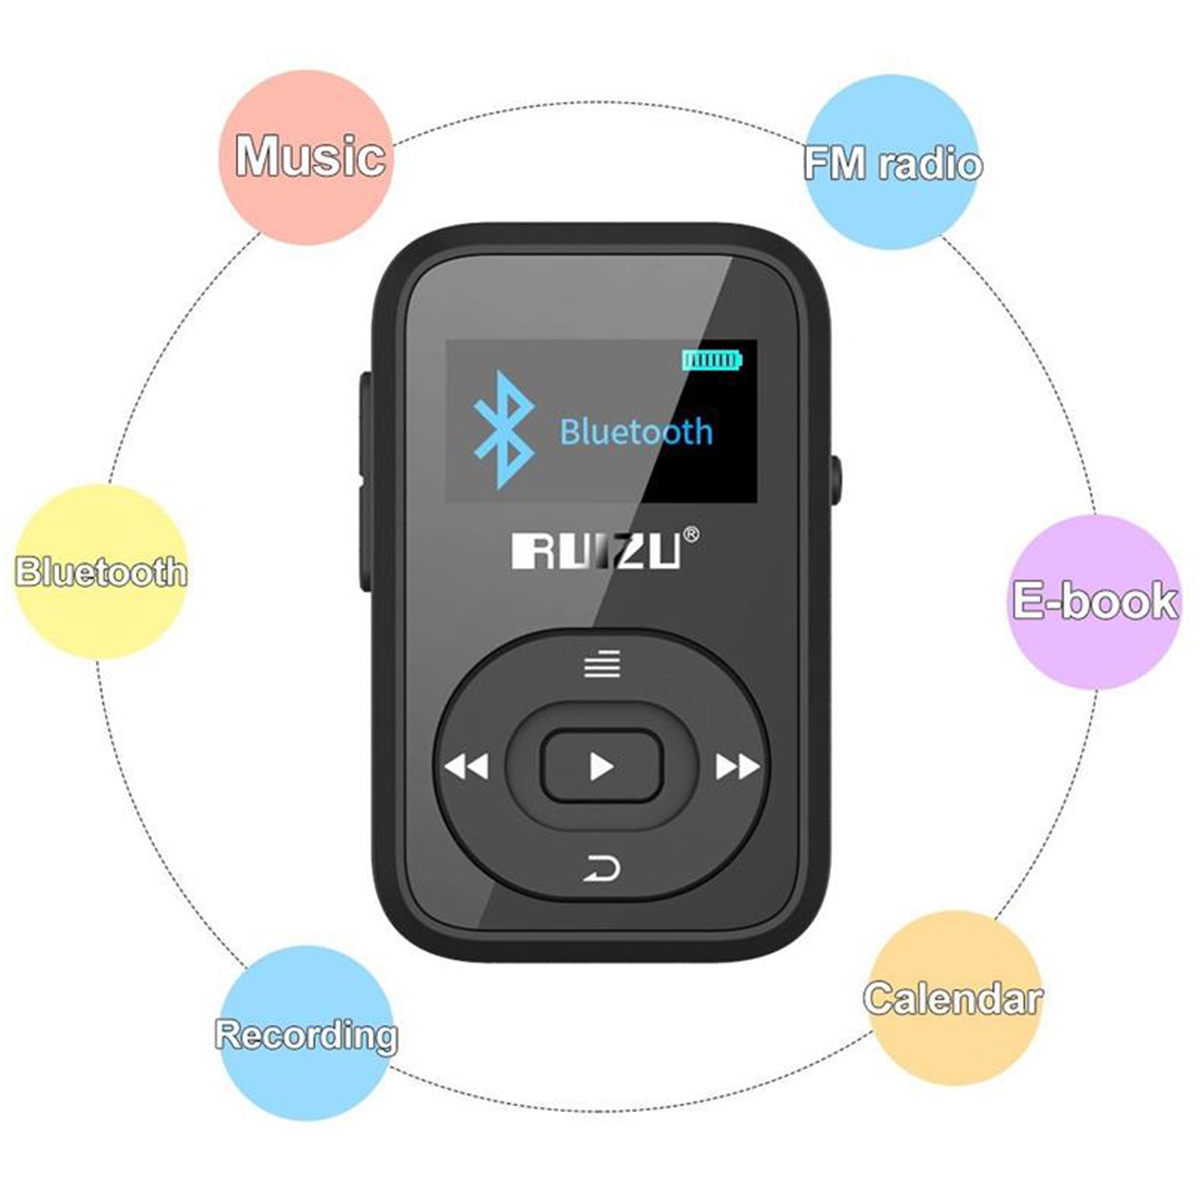 RUIZU X26 MP3 player 8GB Sport mp3 Bluetooth music player with recorder FM radio e-book support TF card free download image